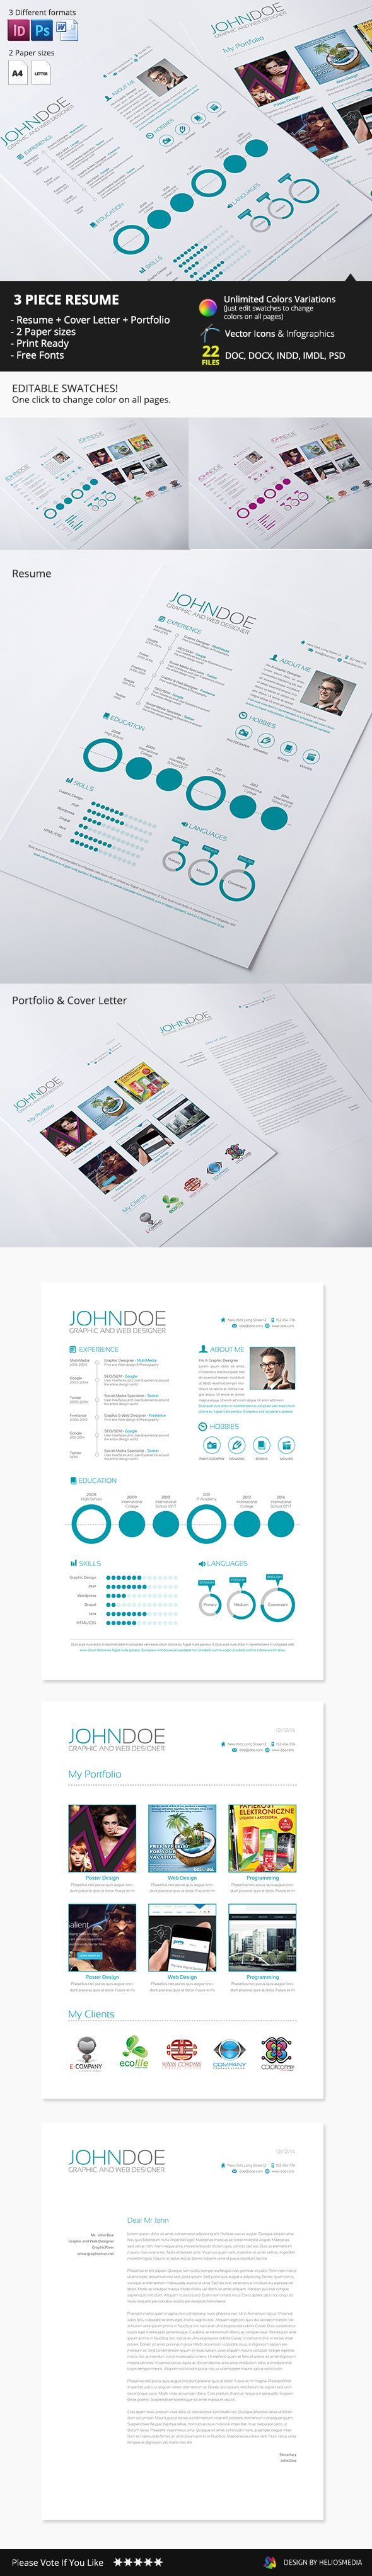 17 best images about resumes infographic resume features 22 files included doc docx indd idml psd cmyk 300 dpi print ready editable swatches fonts resume cover letter simple